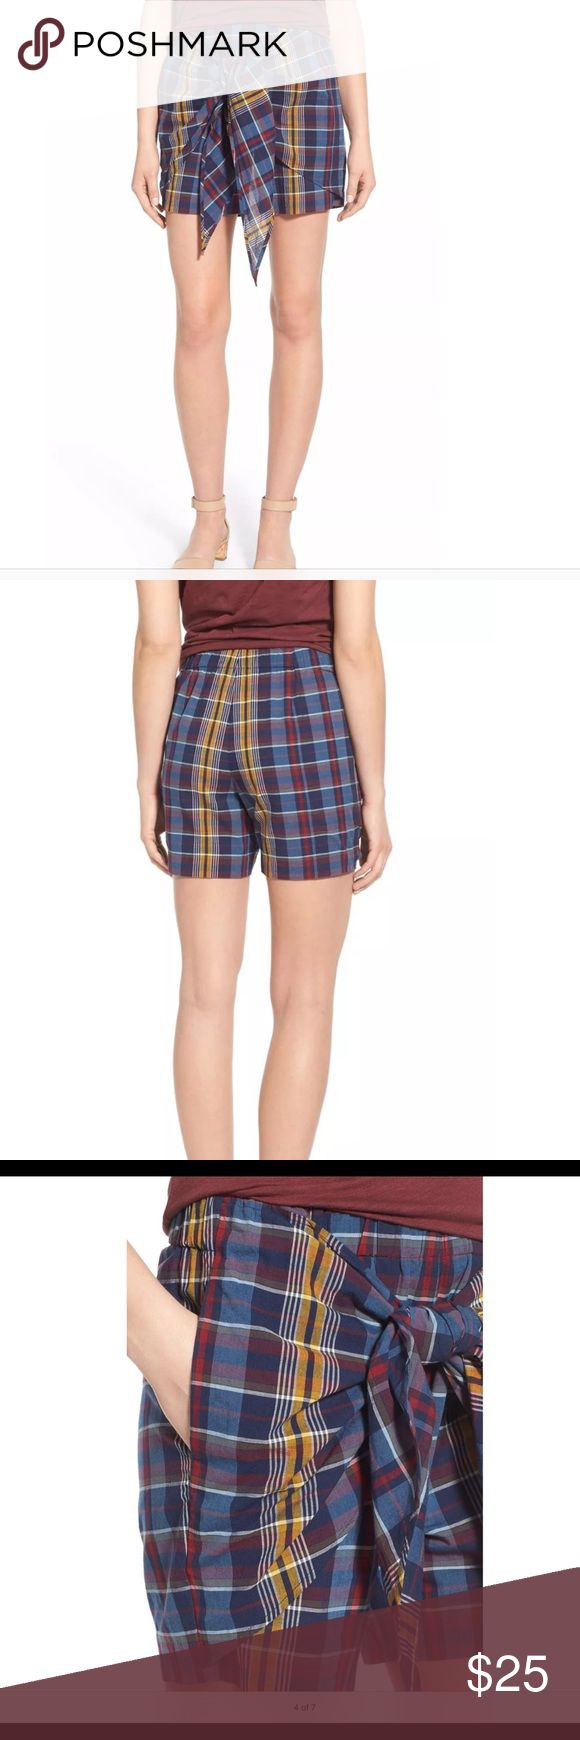 Madewell High Rise Plaid Tie Shorts XS NWT Part Bermuda shorts, part pull-on skirt, this easy plaid skort has a decidedly chill vibe.  The sarong-inspired tie front looks especially cool paired with a cropped or tucked tee. Brand new with tags, size XS.  No stains or rips.  Perfect for that winter getaway!  Made by Madewell Shoot me an offer :) Madewell Shorts Skorts